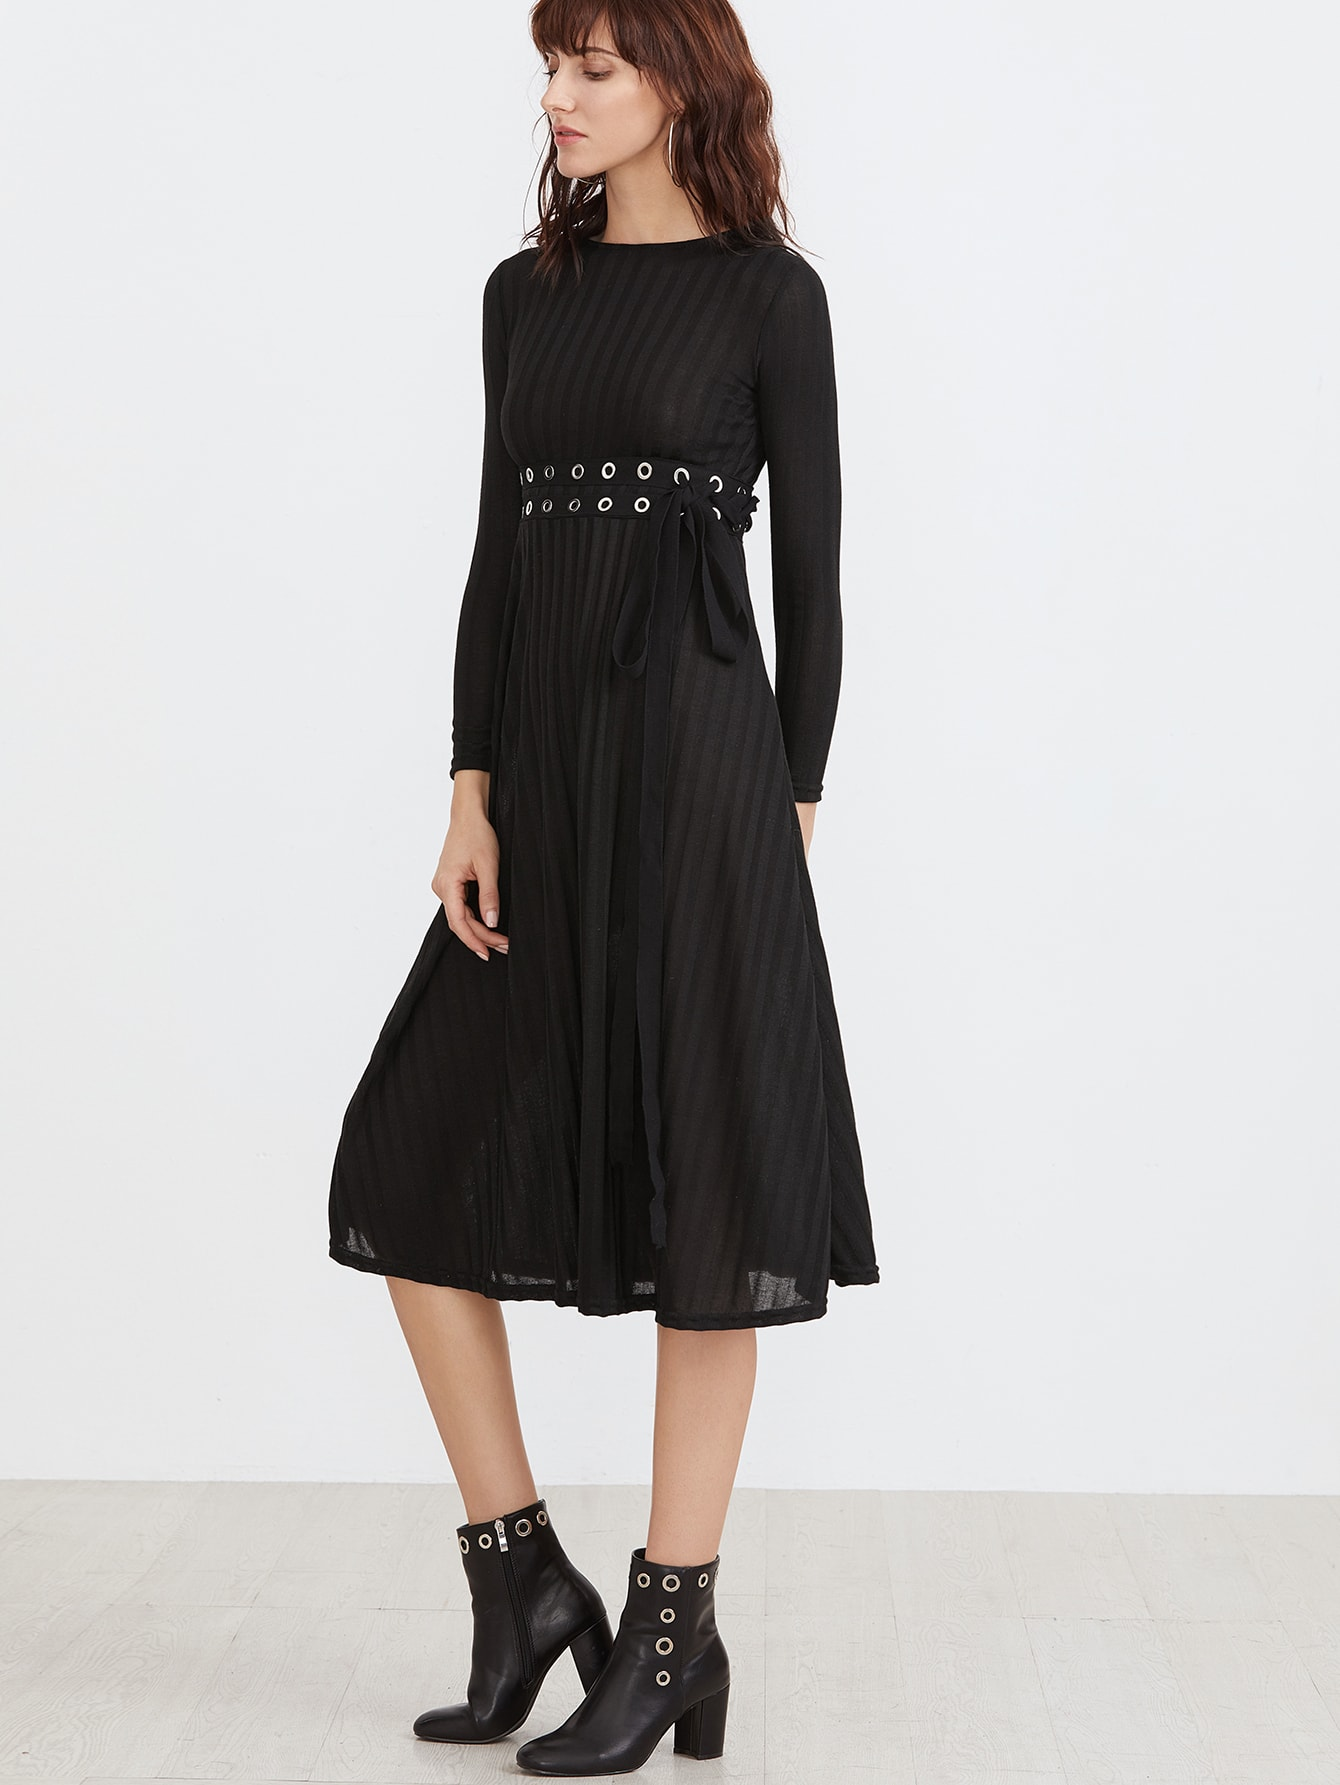 3ff1e85c46a Black Eyelet Lace Up Zipper Back Dress -SheIn(Sheinside)